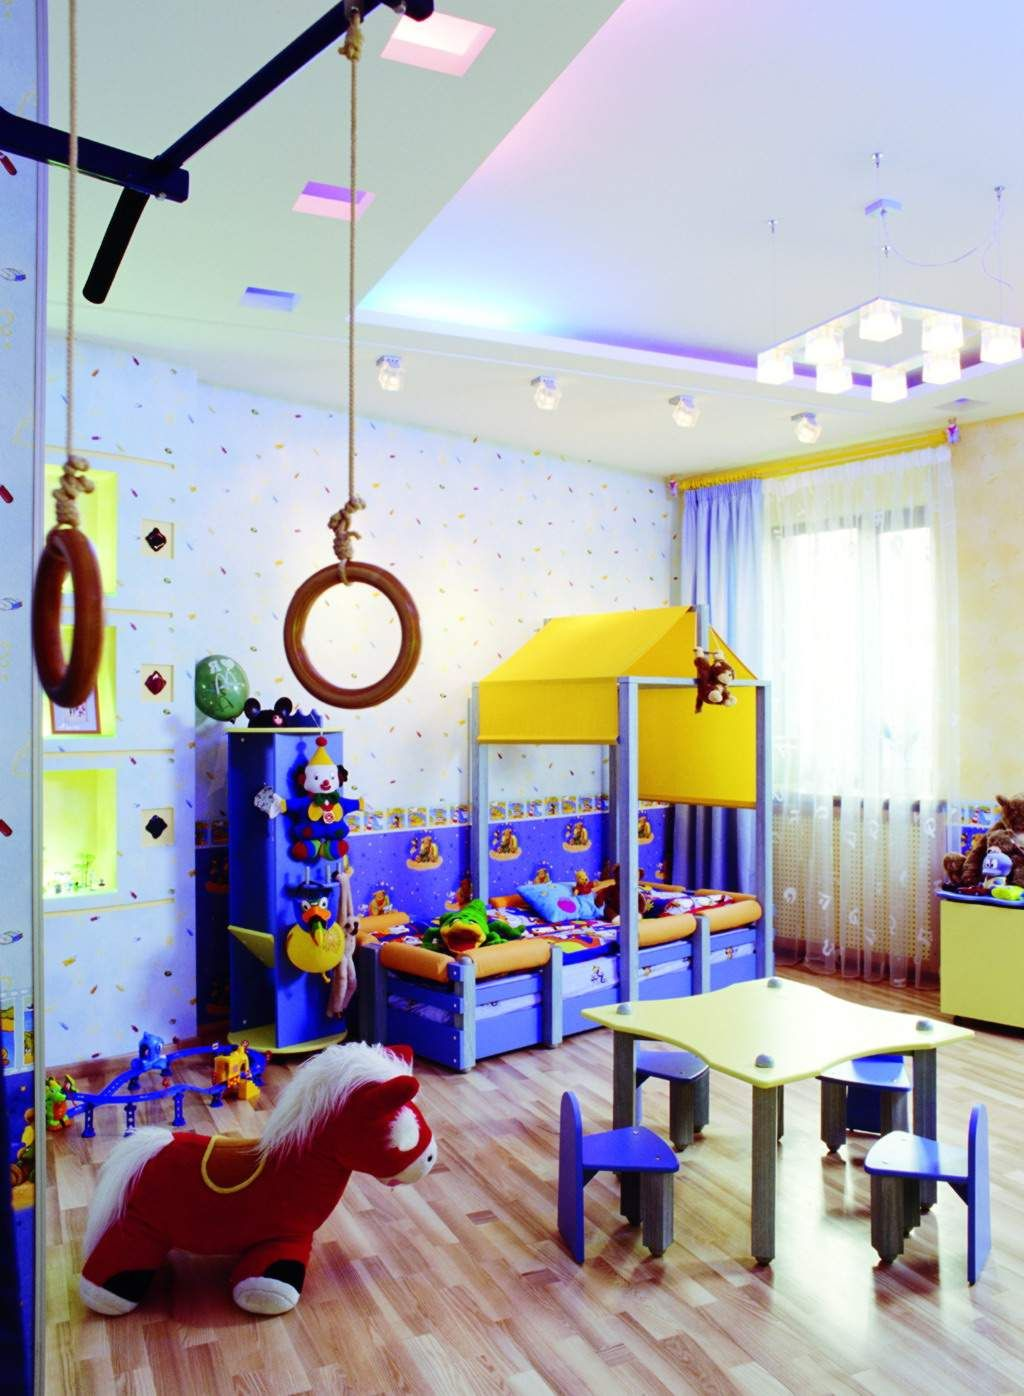 Kids bedroom kids room interior design with play and learn area kids room design with wallpaper - Kids bedroom decoration ideas ...